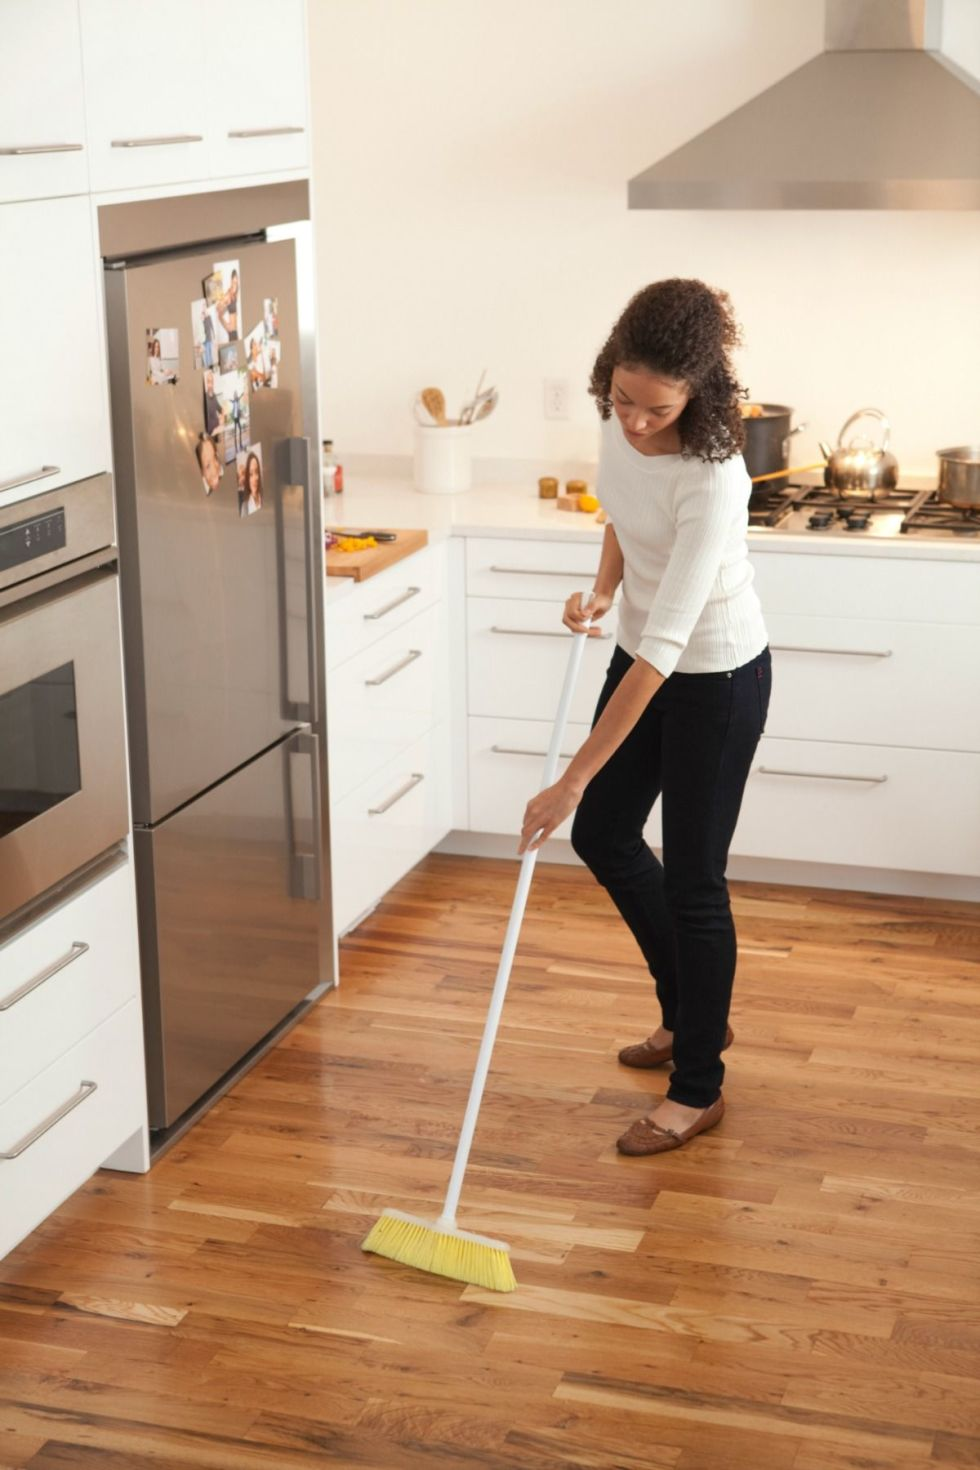 Sweep the kitchen floor - Sweep The Kitchen Floor 5